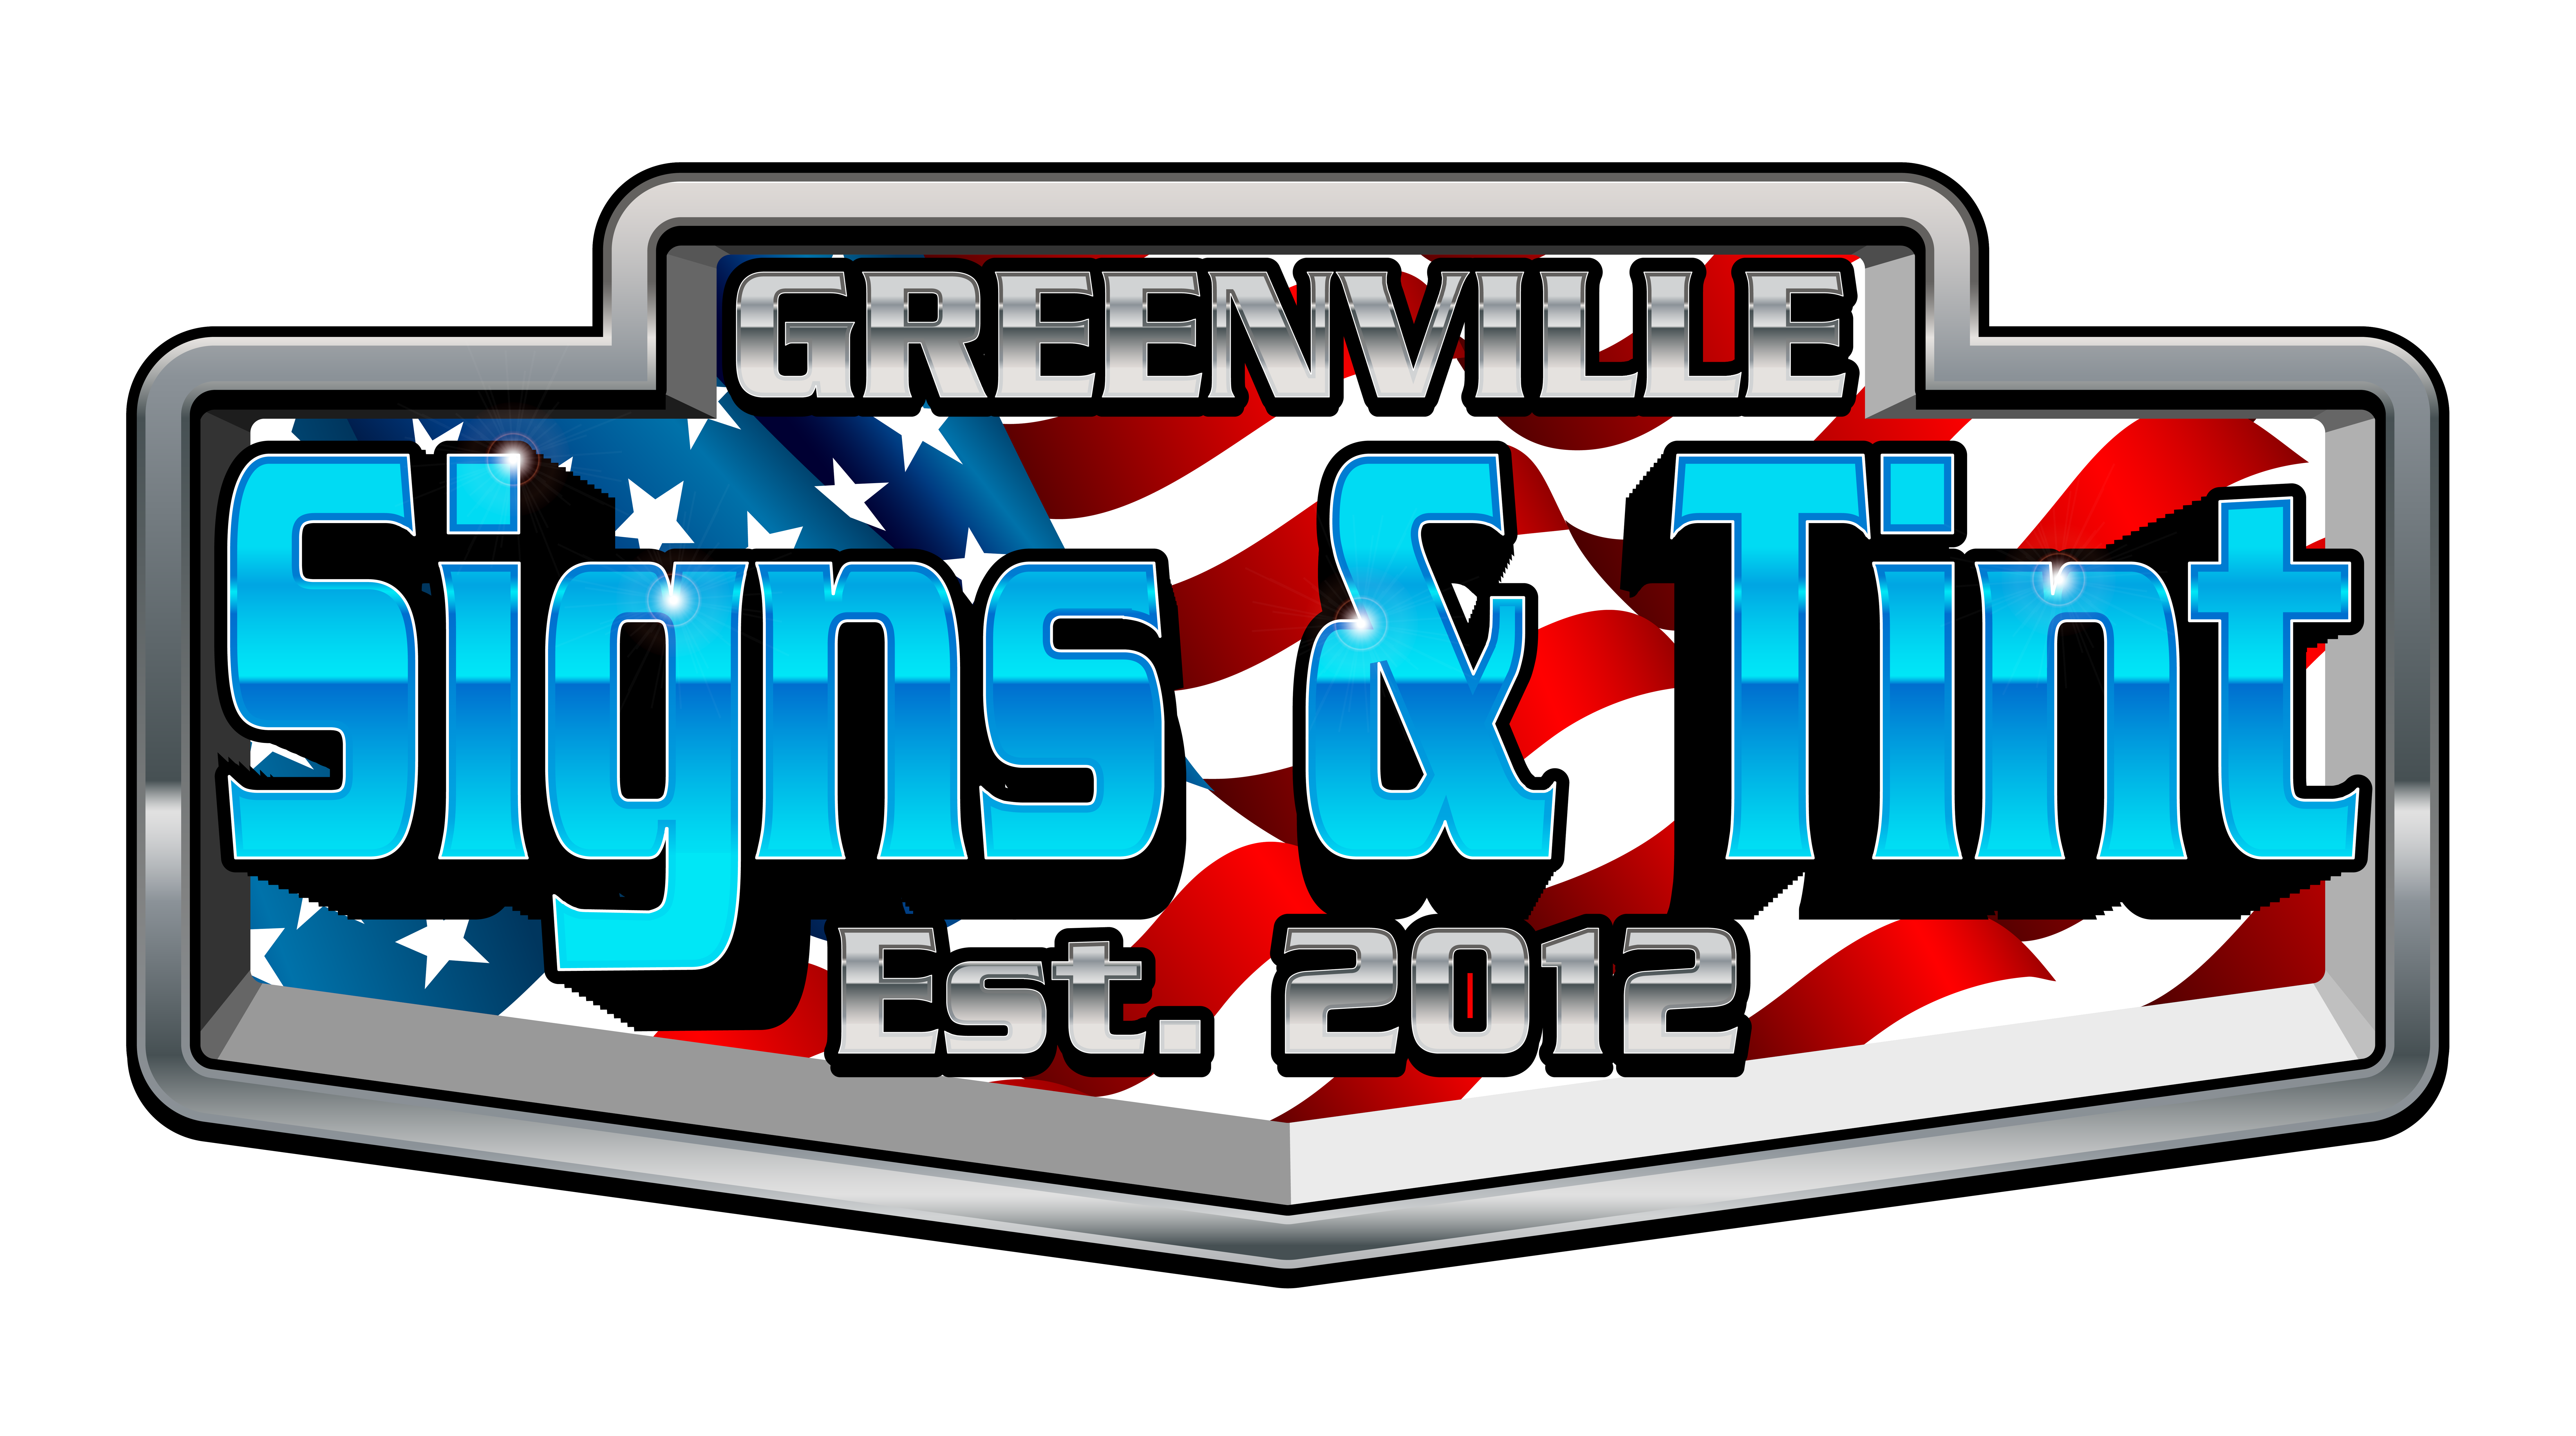 G ville signs tint products services